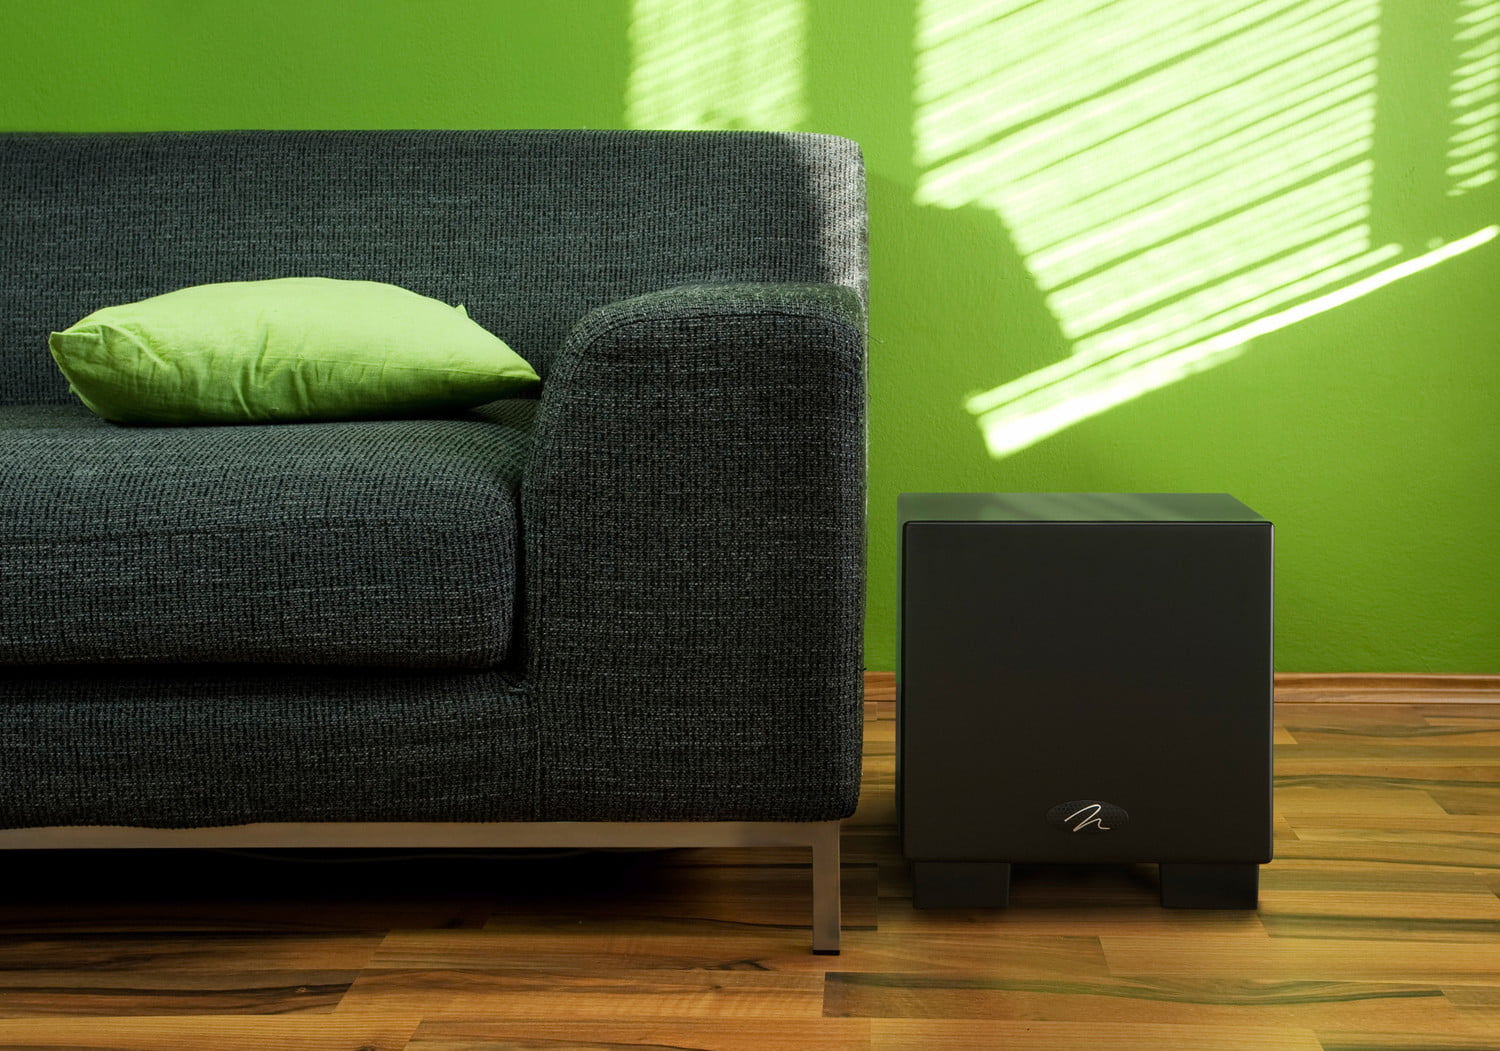 Subwoofer 101: How To Place and Setup Your Subwoofer ...